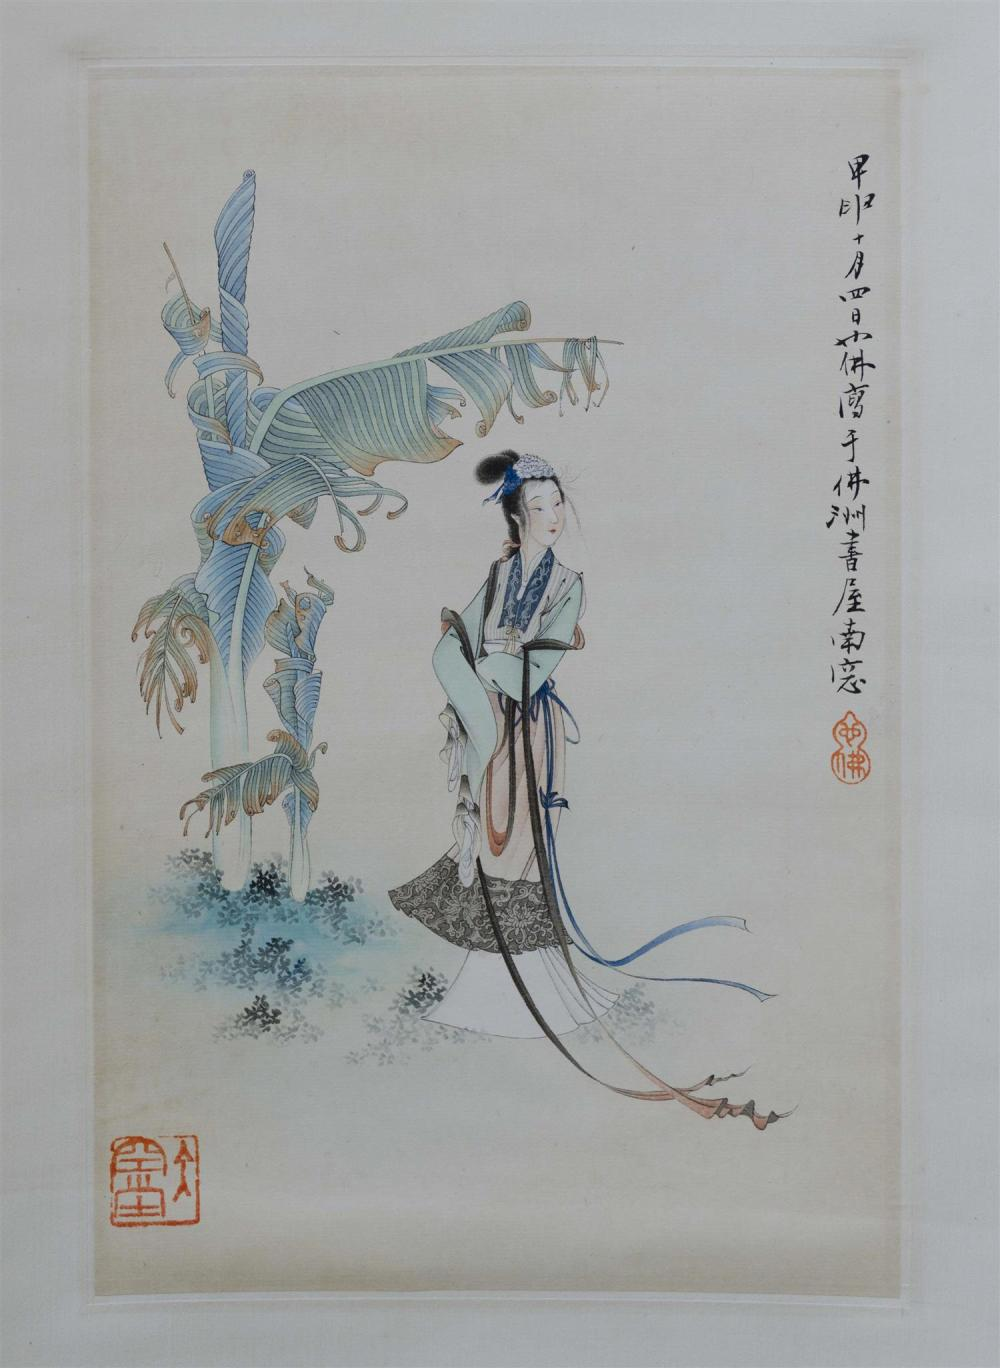 CHINESE SCROLL PAINTING ON PAPER Depicting a maiden and palm tree. Marked with two seals and calligraphy. 13